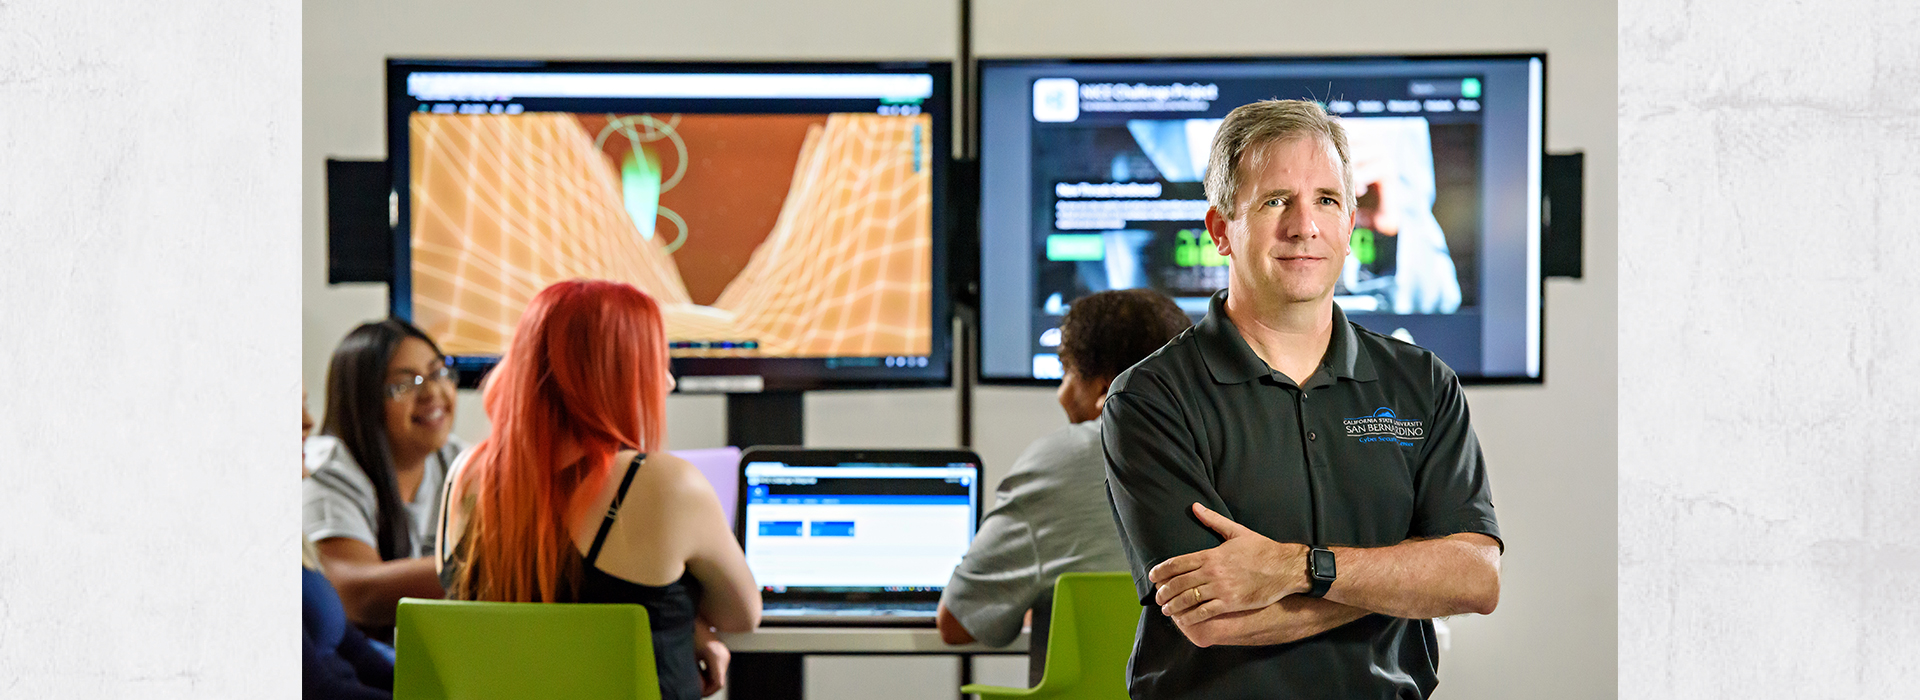 CSUSB's world class cybersecurity program continues to excel